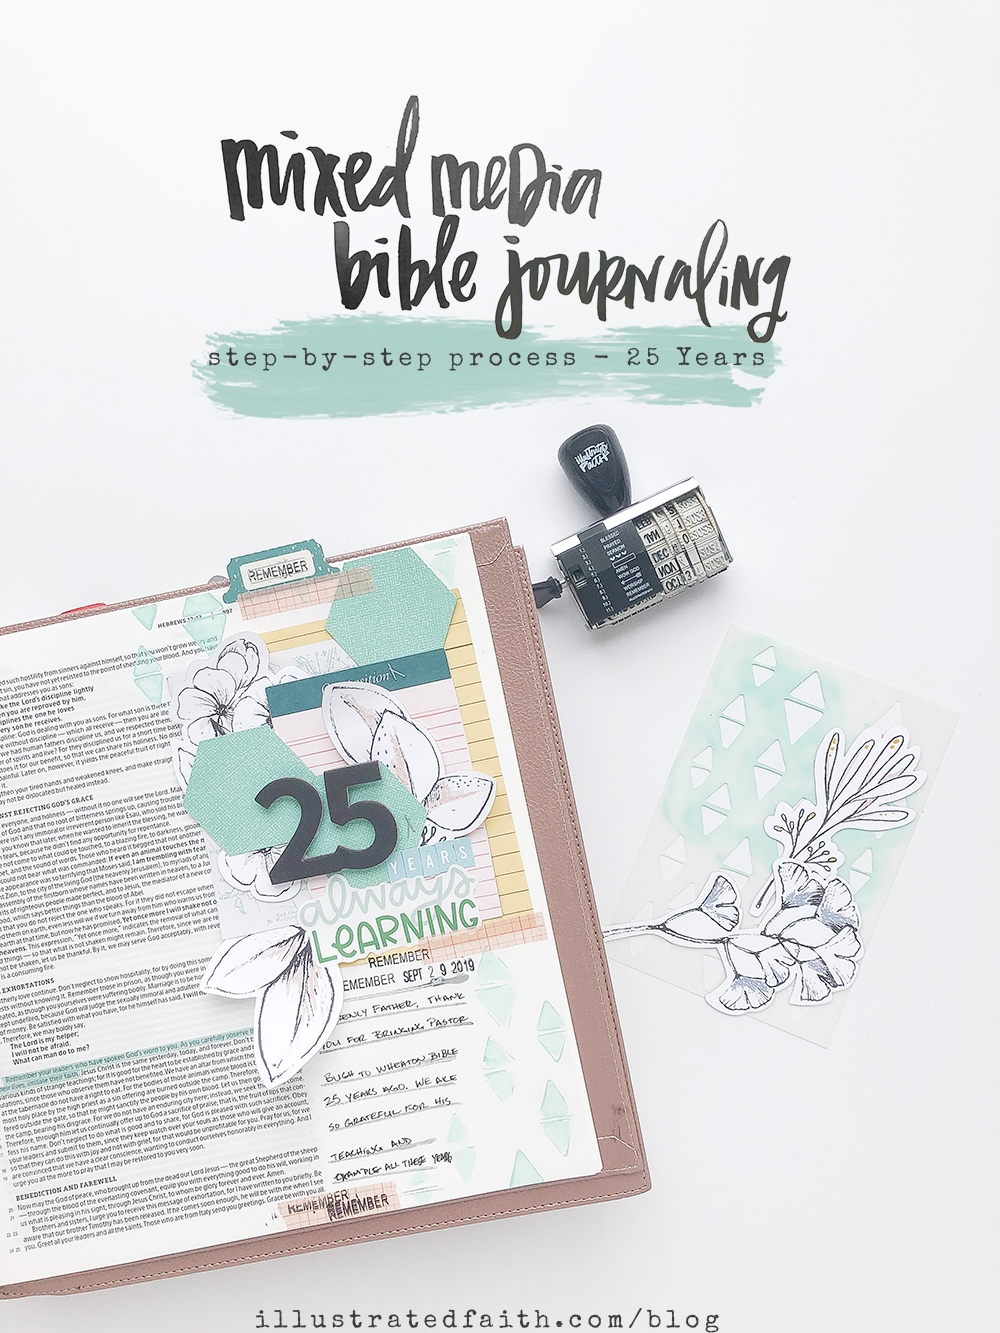 Mixed Media Bible Journaling Step-by-Step Process by Heather Greenwood | 25 Years | Hebrews 13:7